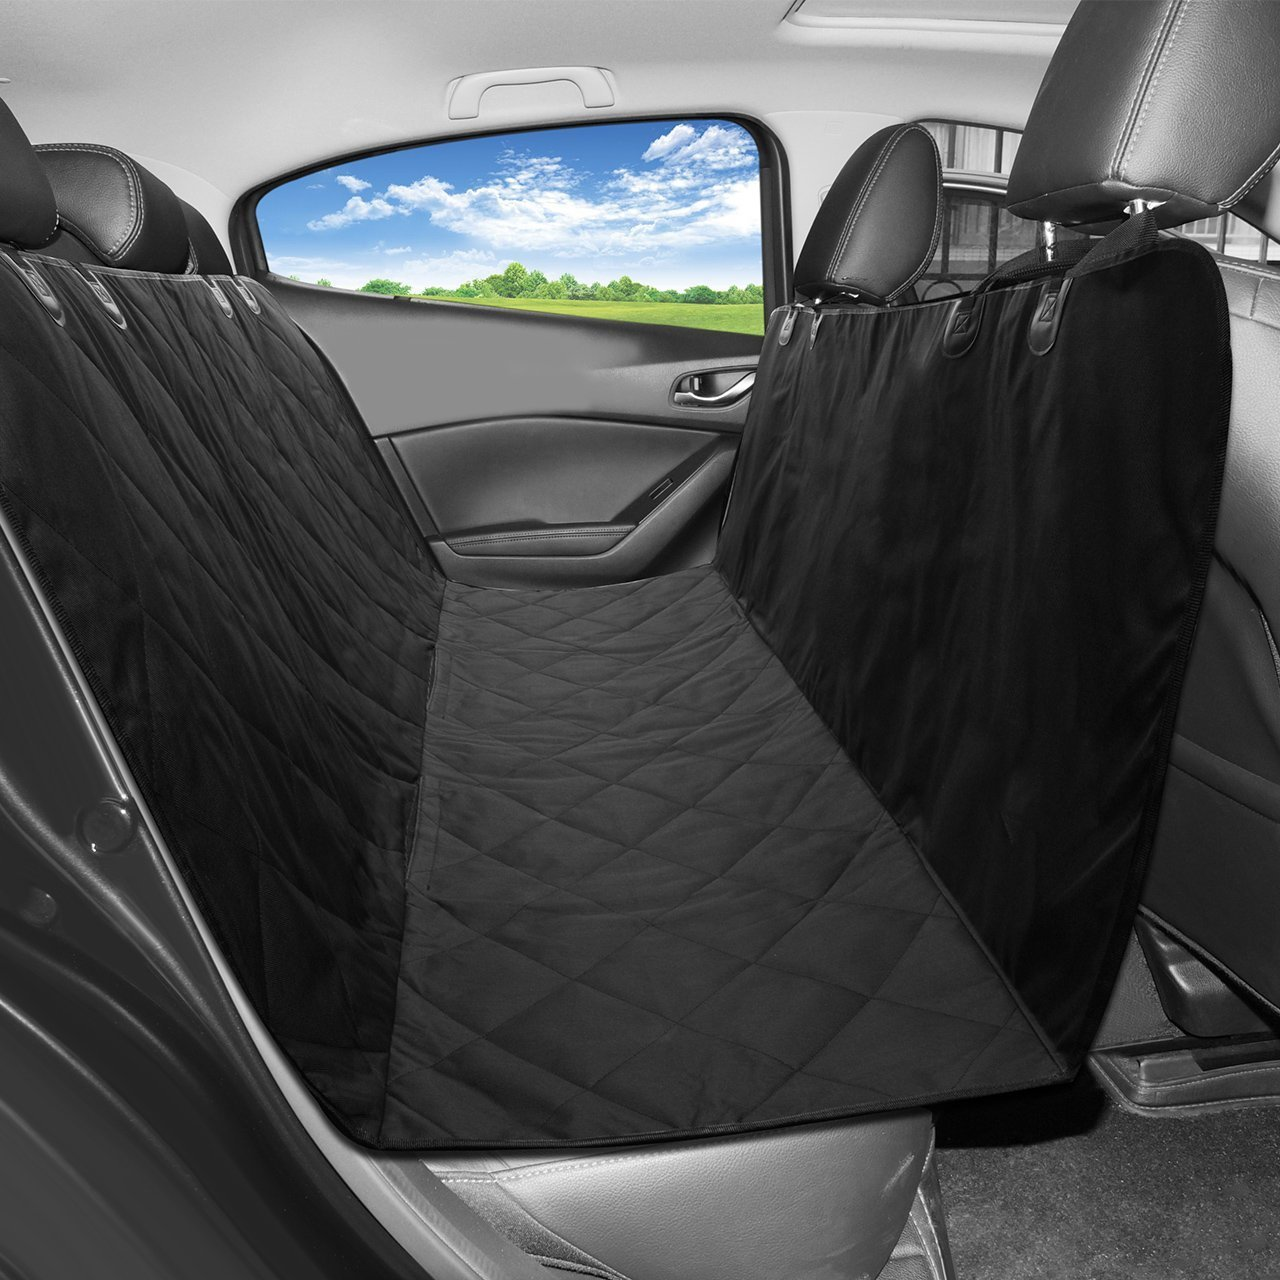 car pet seat cover waterproof nonslip car seat protector hammock scratch proof ebay. Black Bedroom Furniture Sets. Home Design Ideas